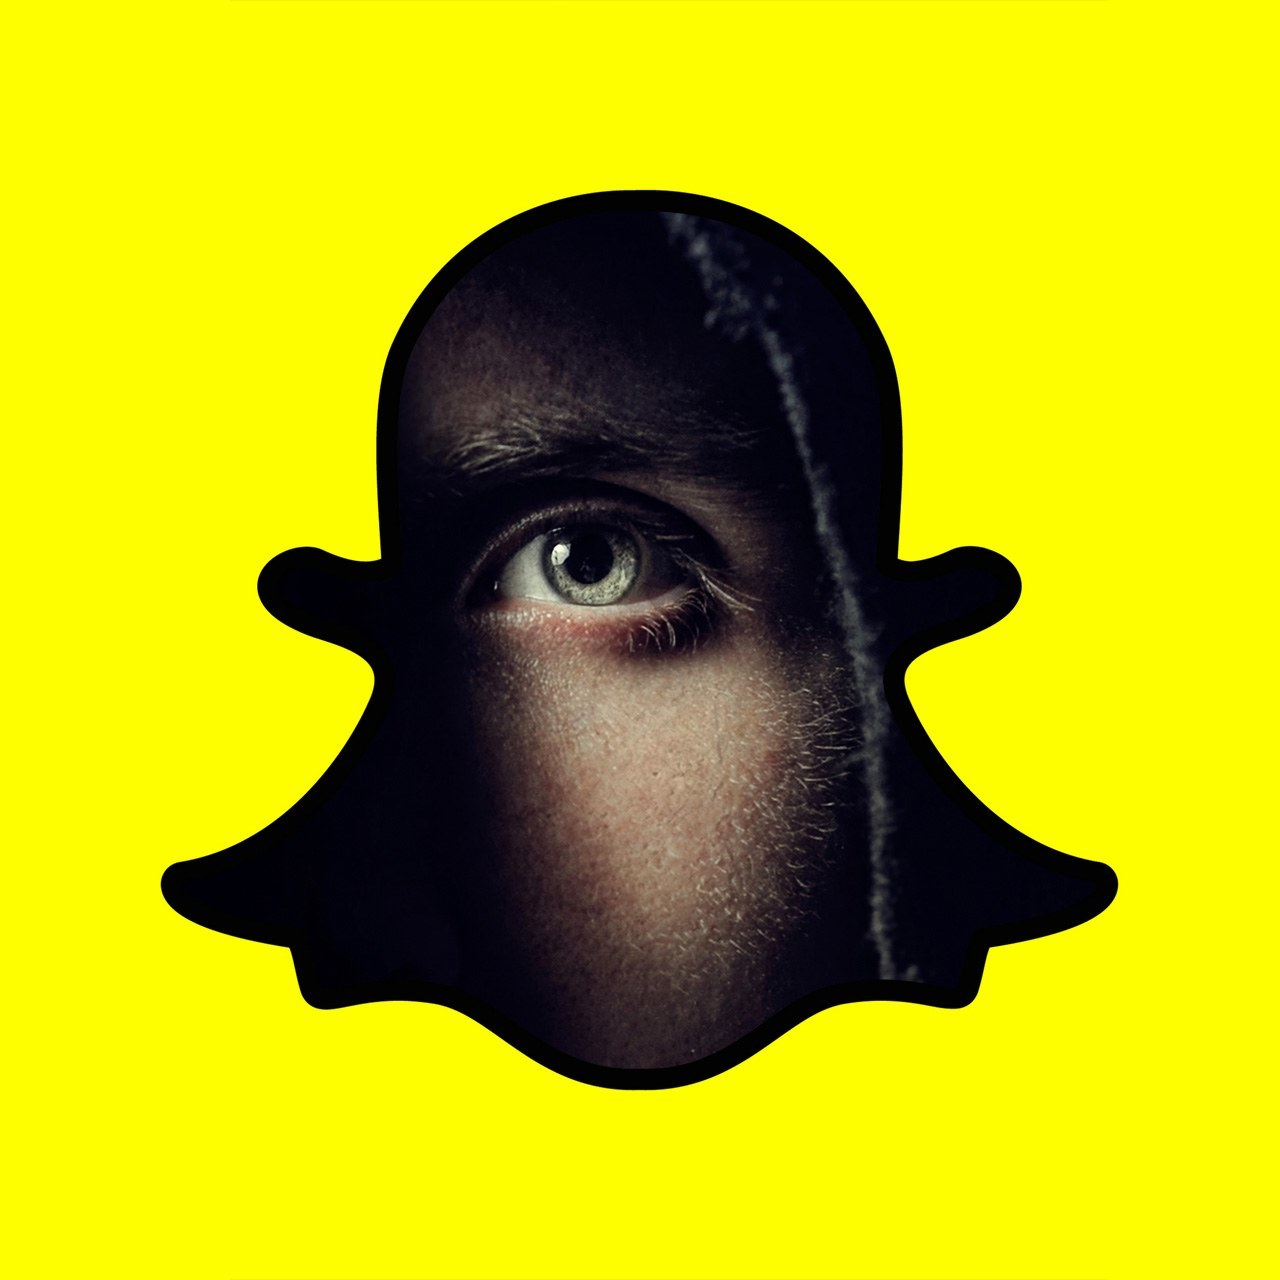 Oh snap; is your Snapchat secure?